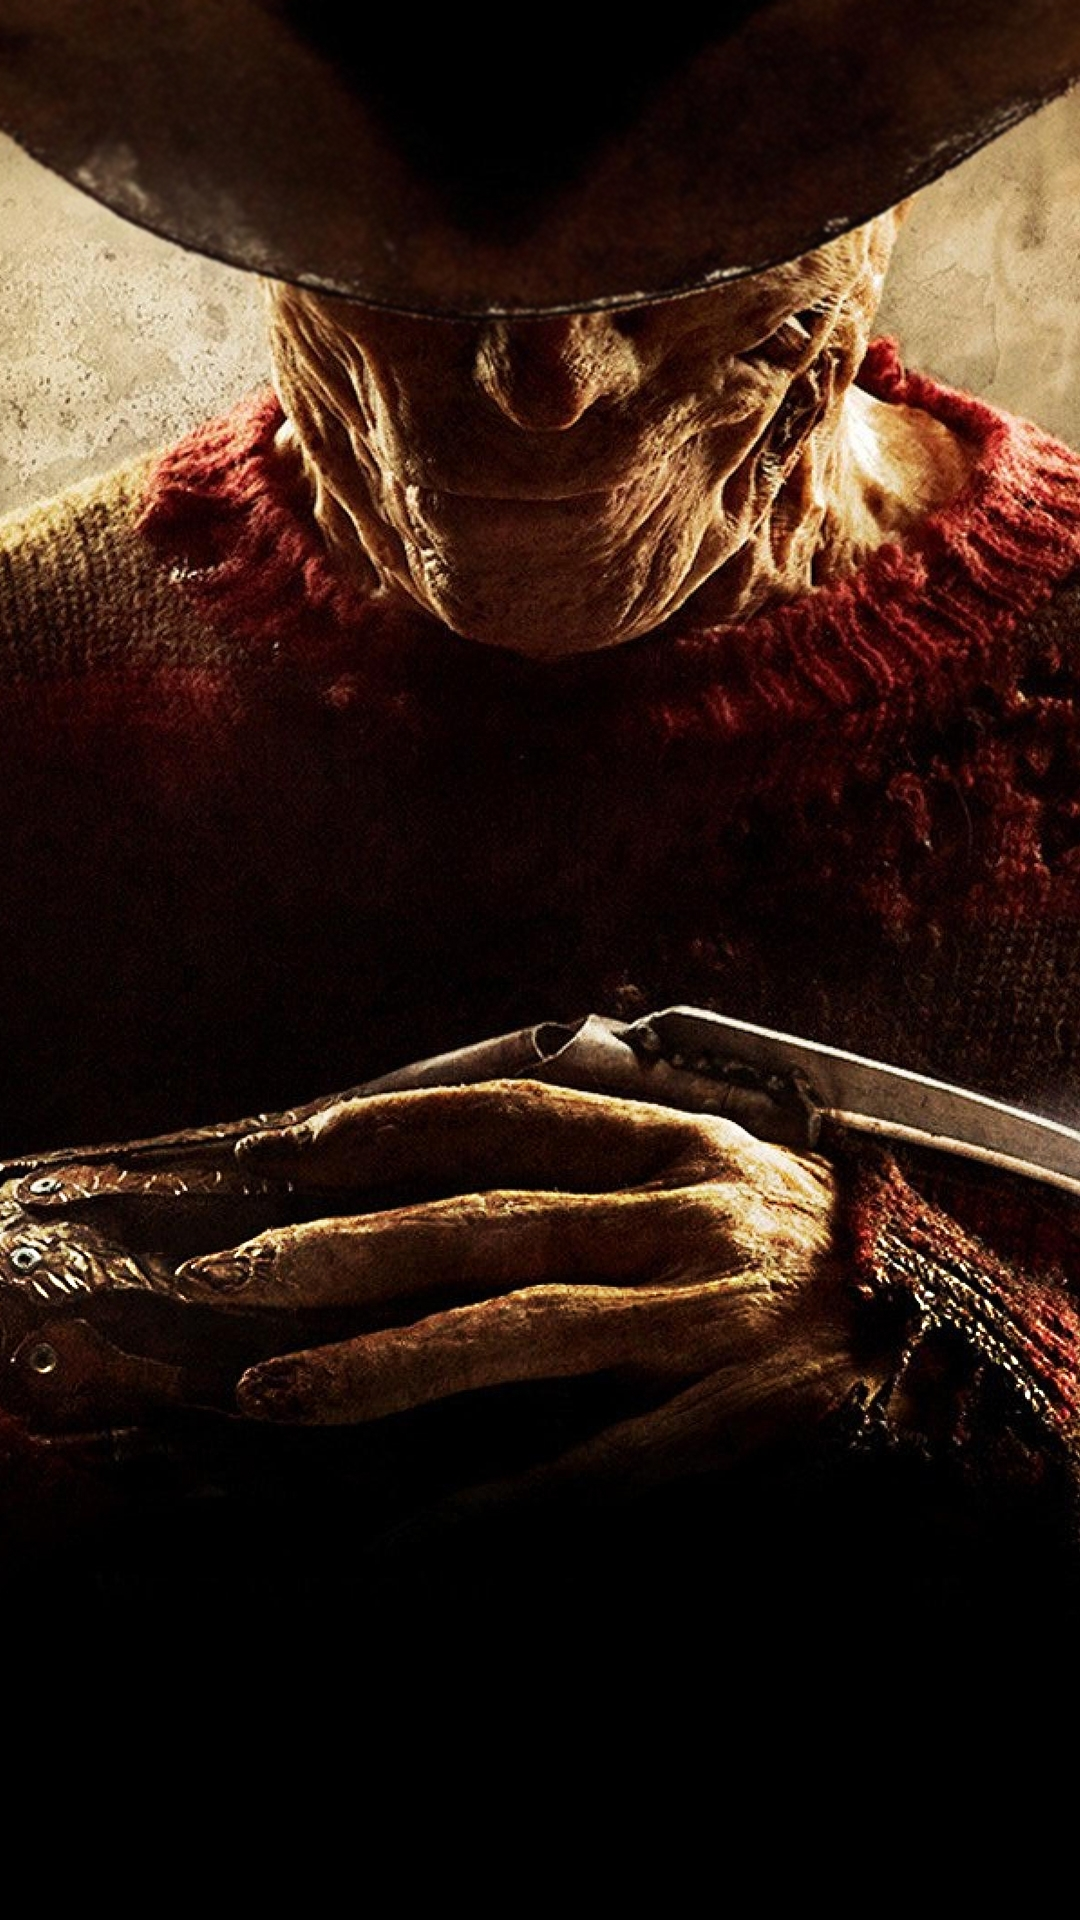 free hd freddy krueger phone wallpaper4478